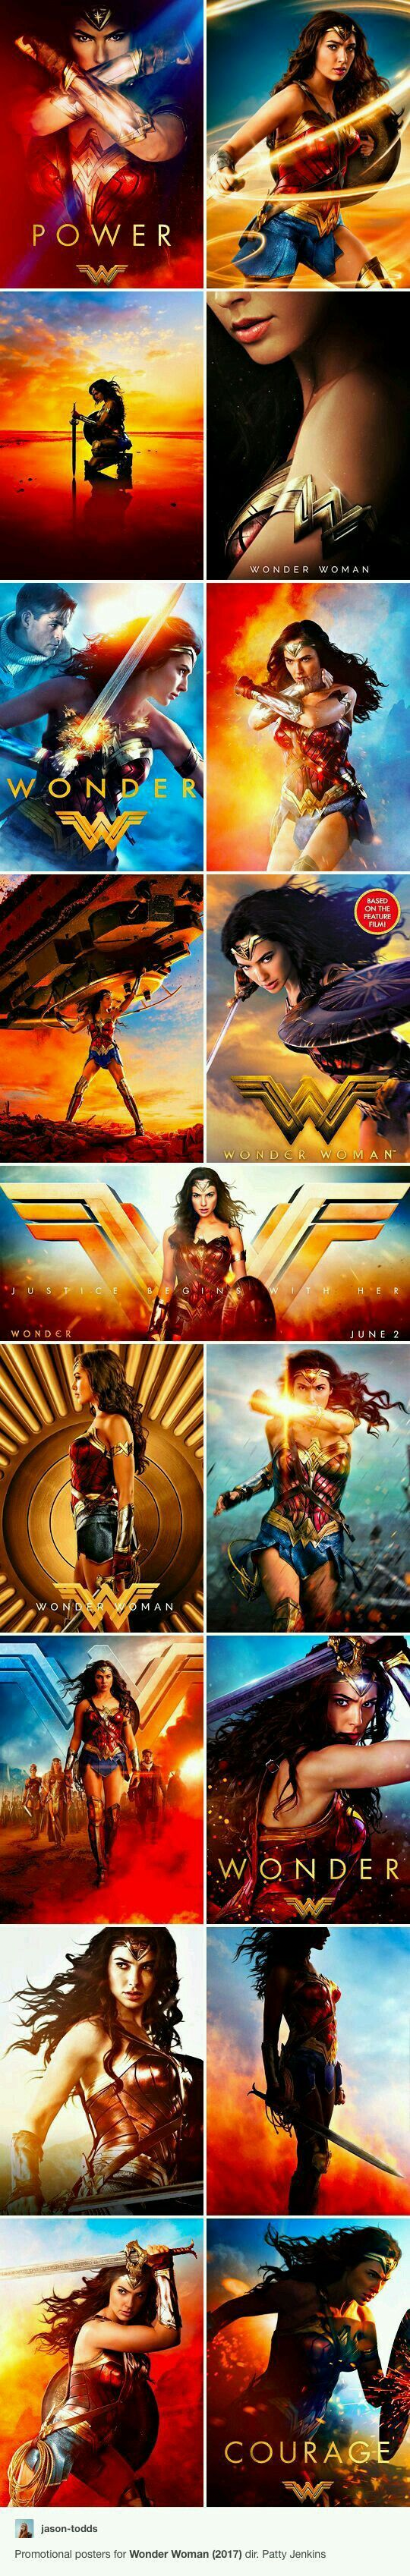 Wonder woman movie posters